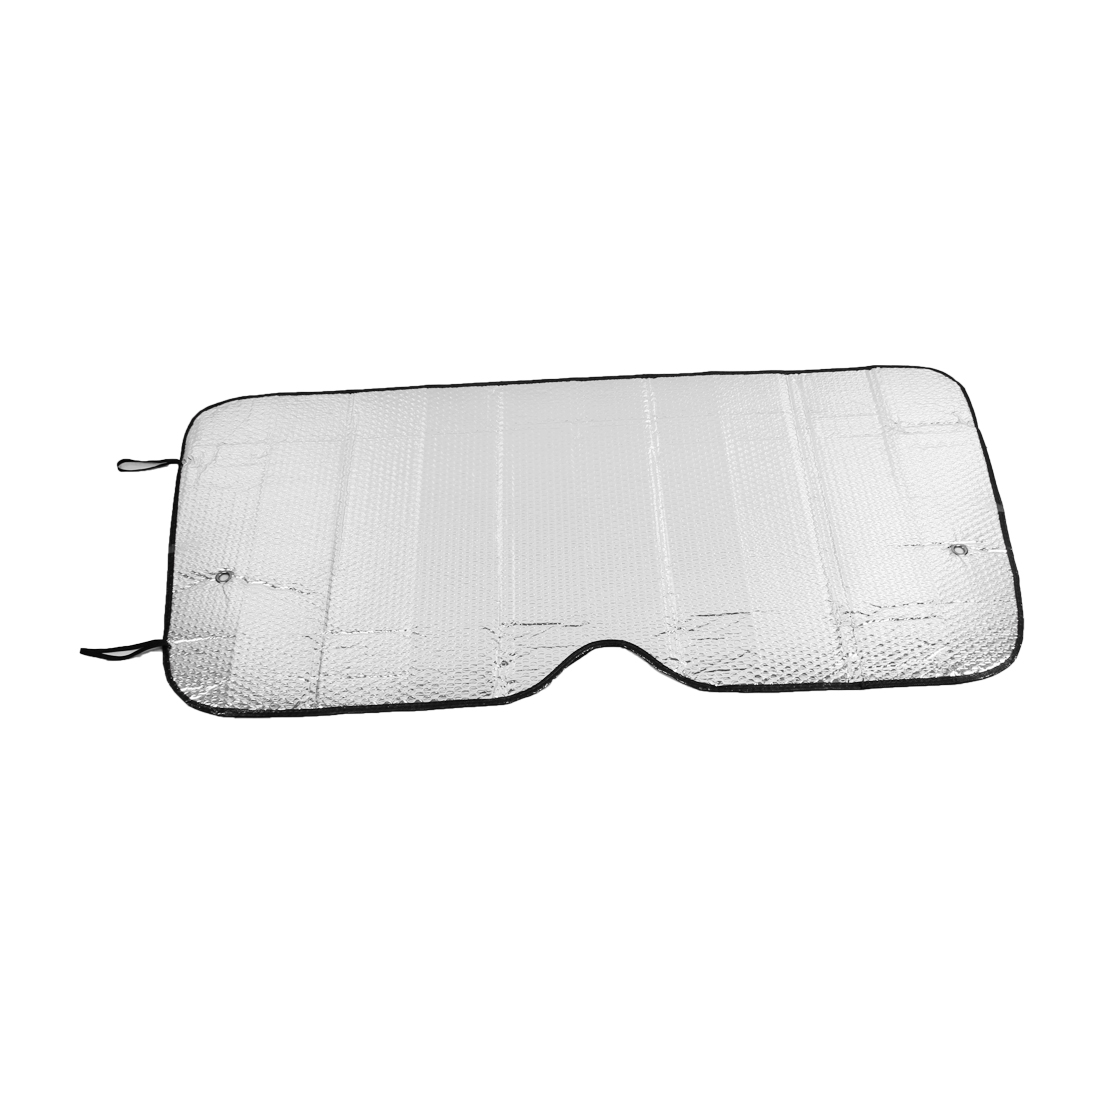 Vehicle Car 126cm x 61cm Silver Tone Sun Visor Sunshield Sunshade w Suction Cup